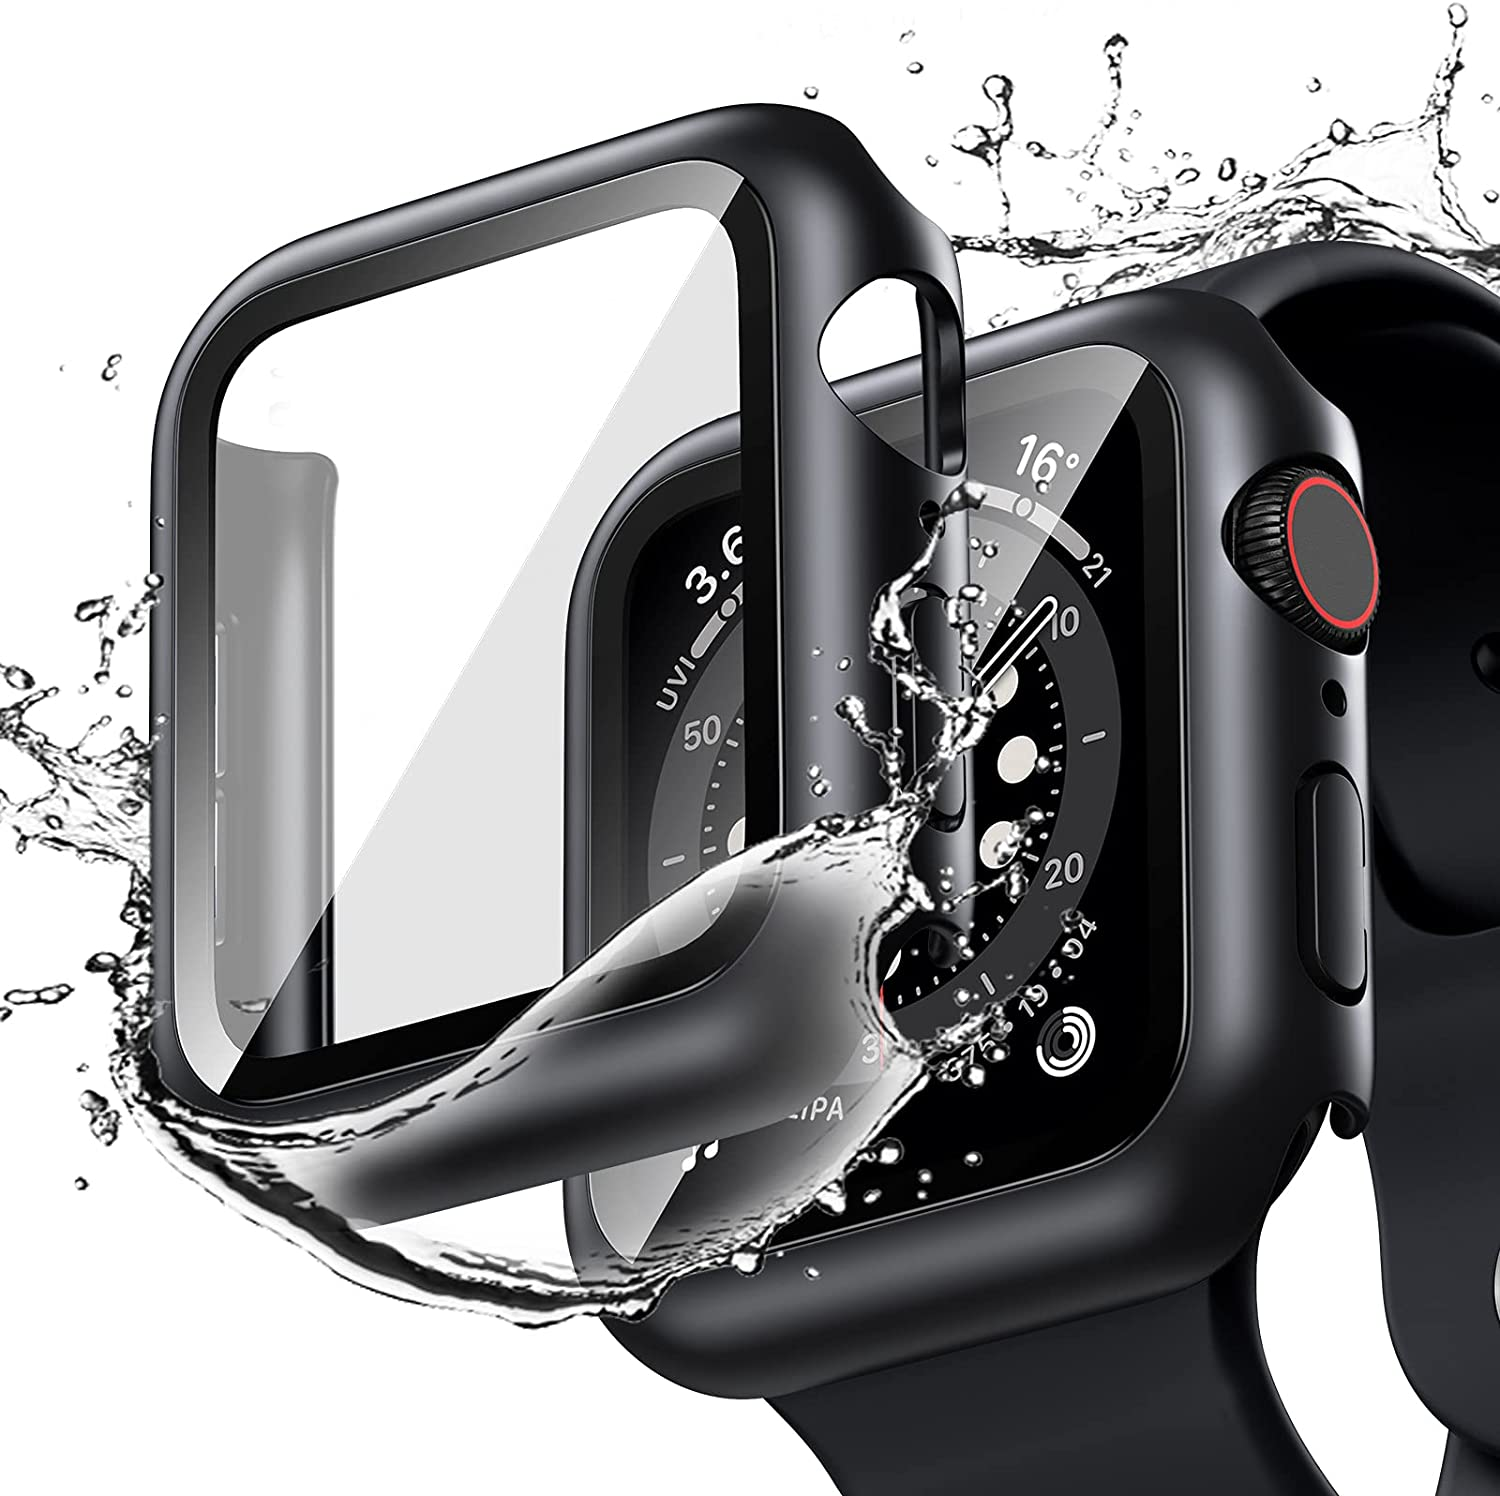 [2 Pack] Goton Waterproof Case Compatible for Apple Watch SE Series 6 /5 /4 44mm Case with Screen Protector, PC Matte Hard HD Tempered Glass Full Face Cover Protective Bumper Watch Case Accessories for iwatch women men (Black+Black, 44mm)